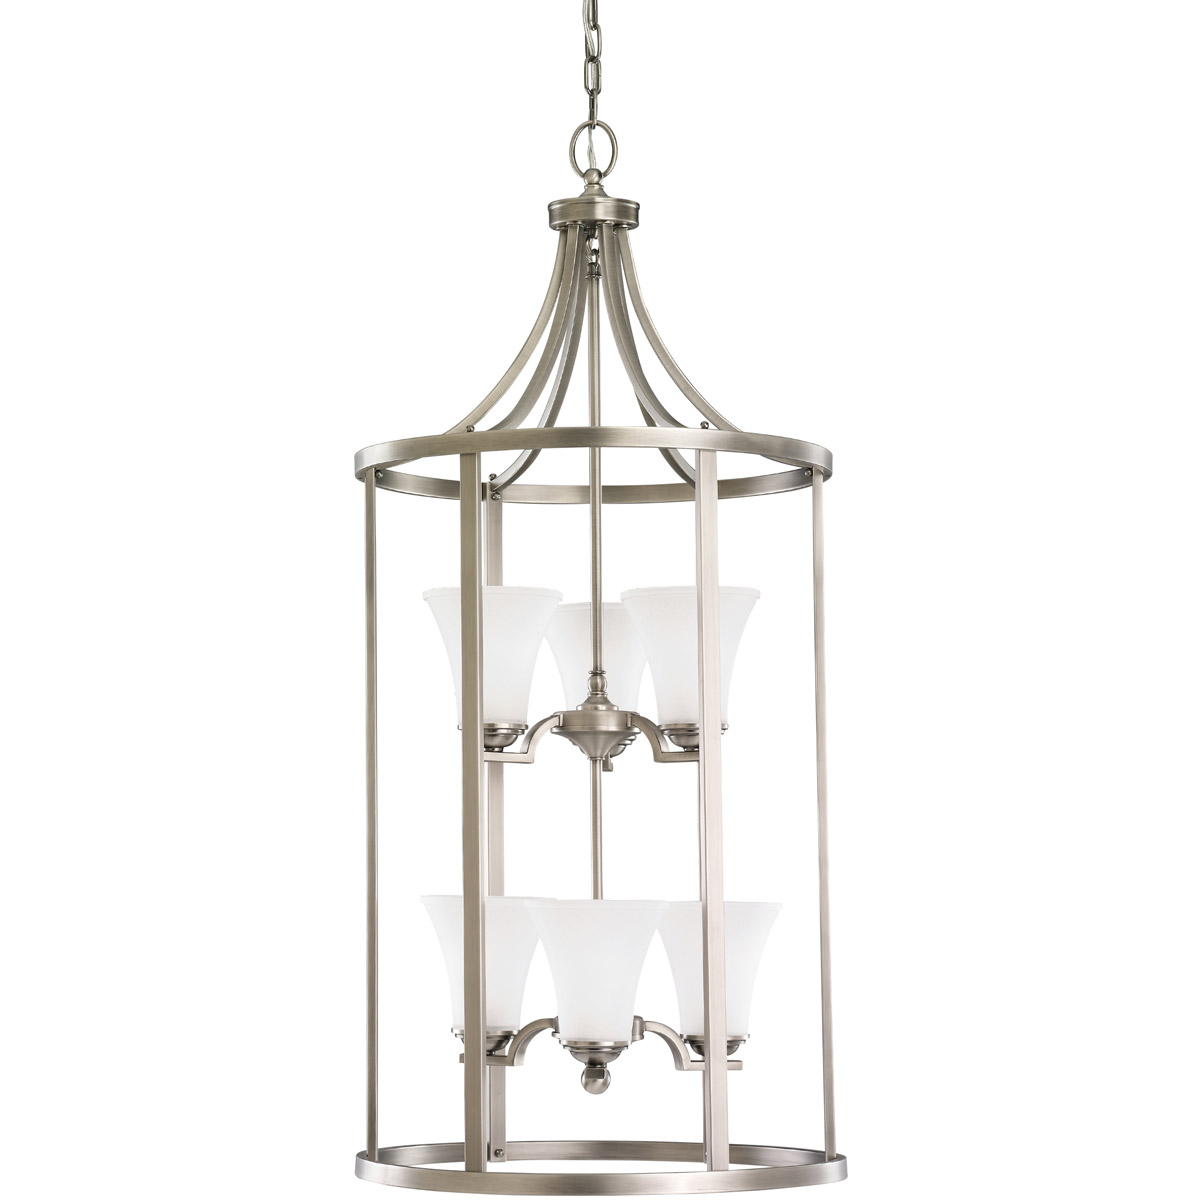 Sea Gull Lighting Somerton 6 Light Foyer Pendant in Antique Brushed Nickel 51376-965